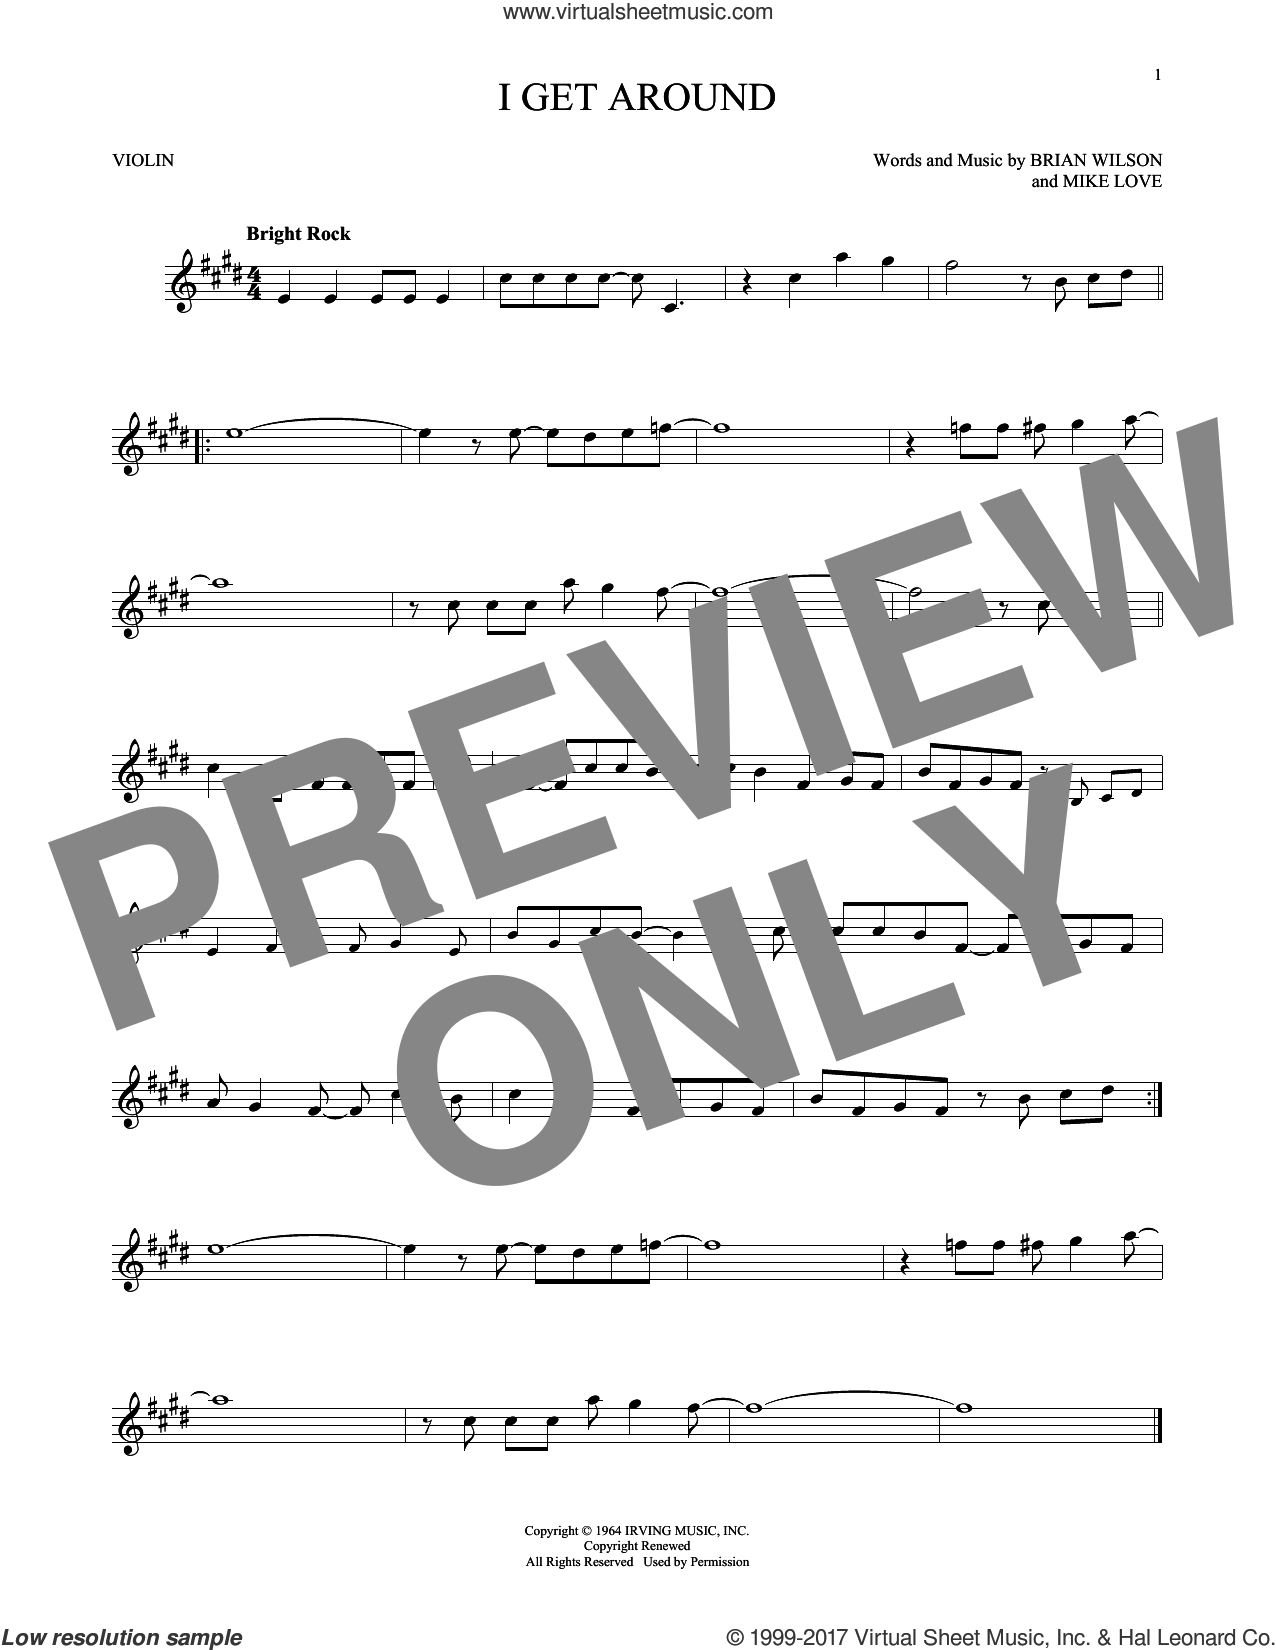 I Get Around sheet music for violin solo by The Beach Boys, Brian Wilson and Mike Love, intermediate skill level